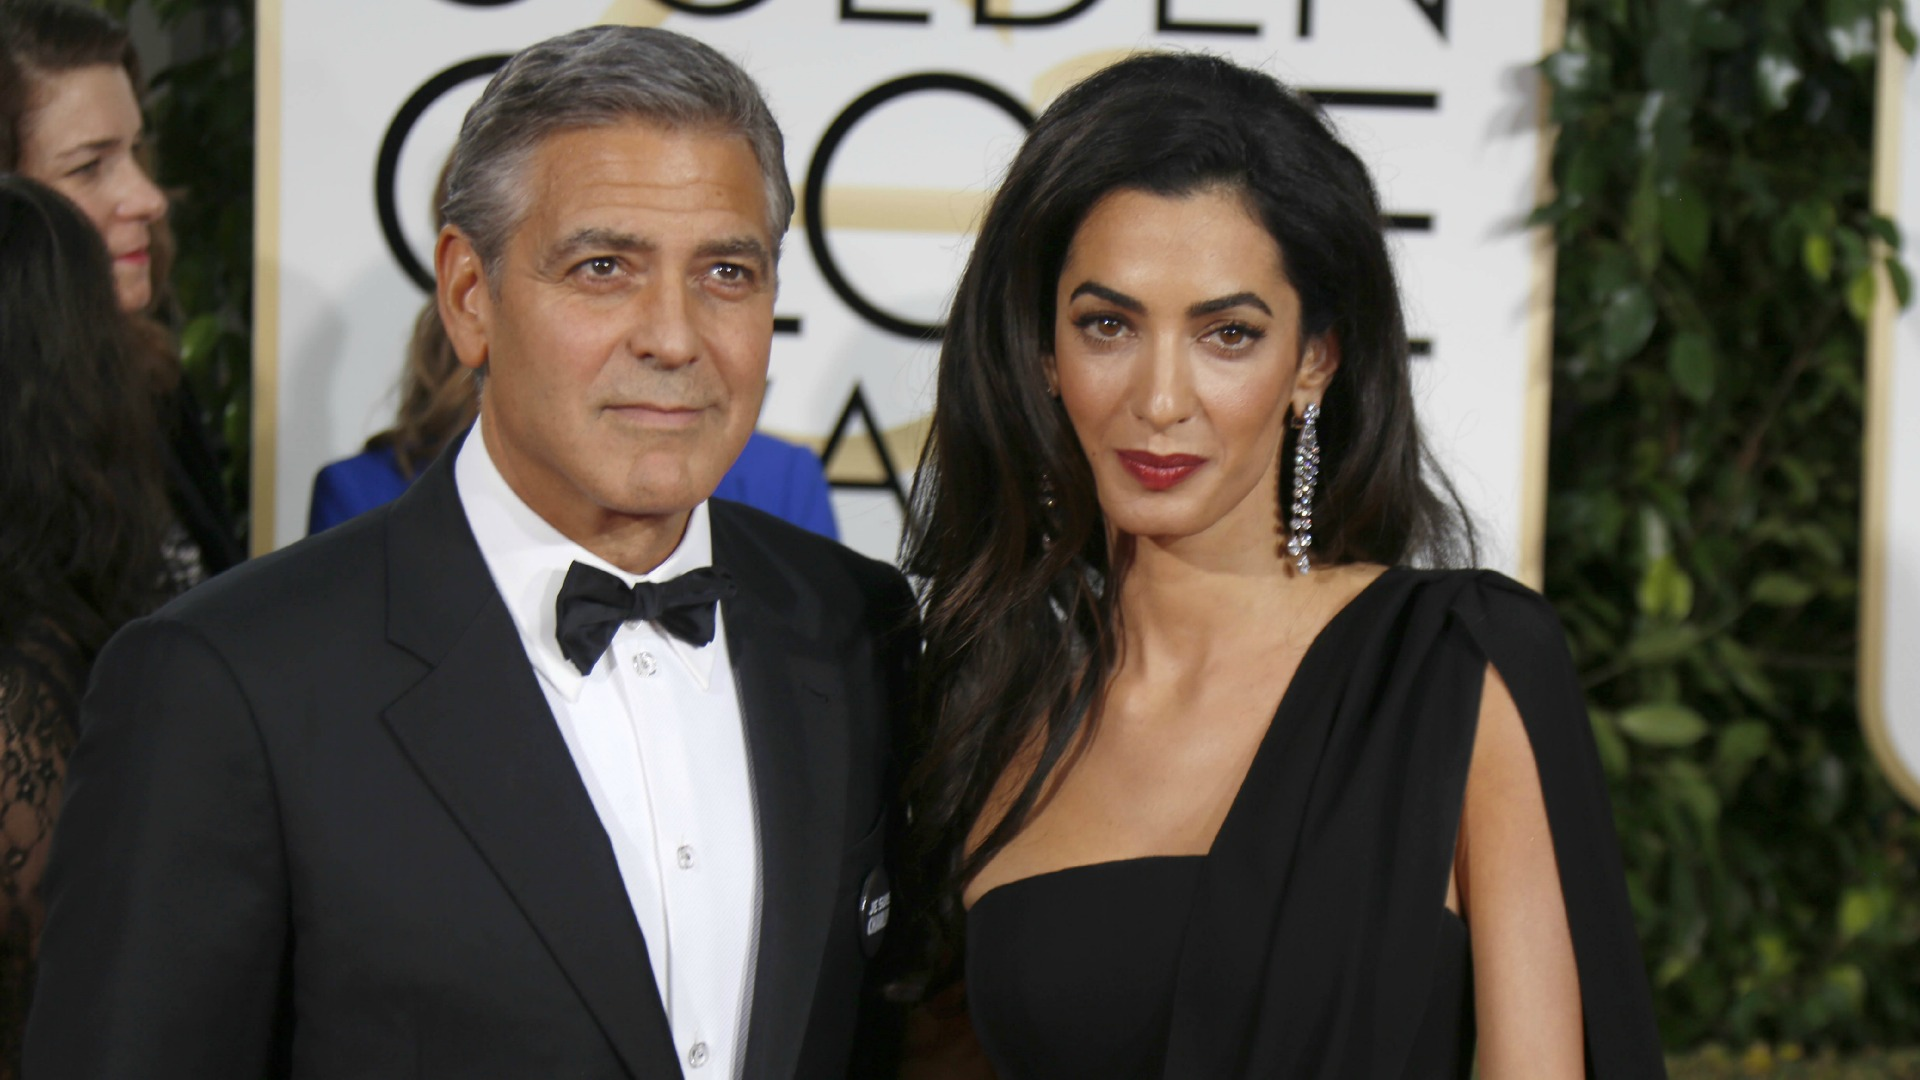 Amal and George Clooney at the Golden Globes 2015